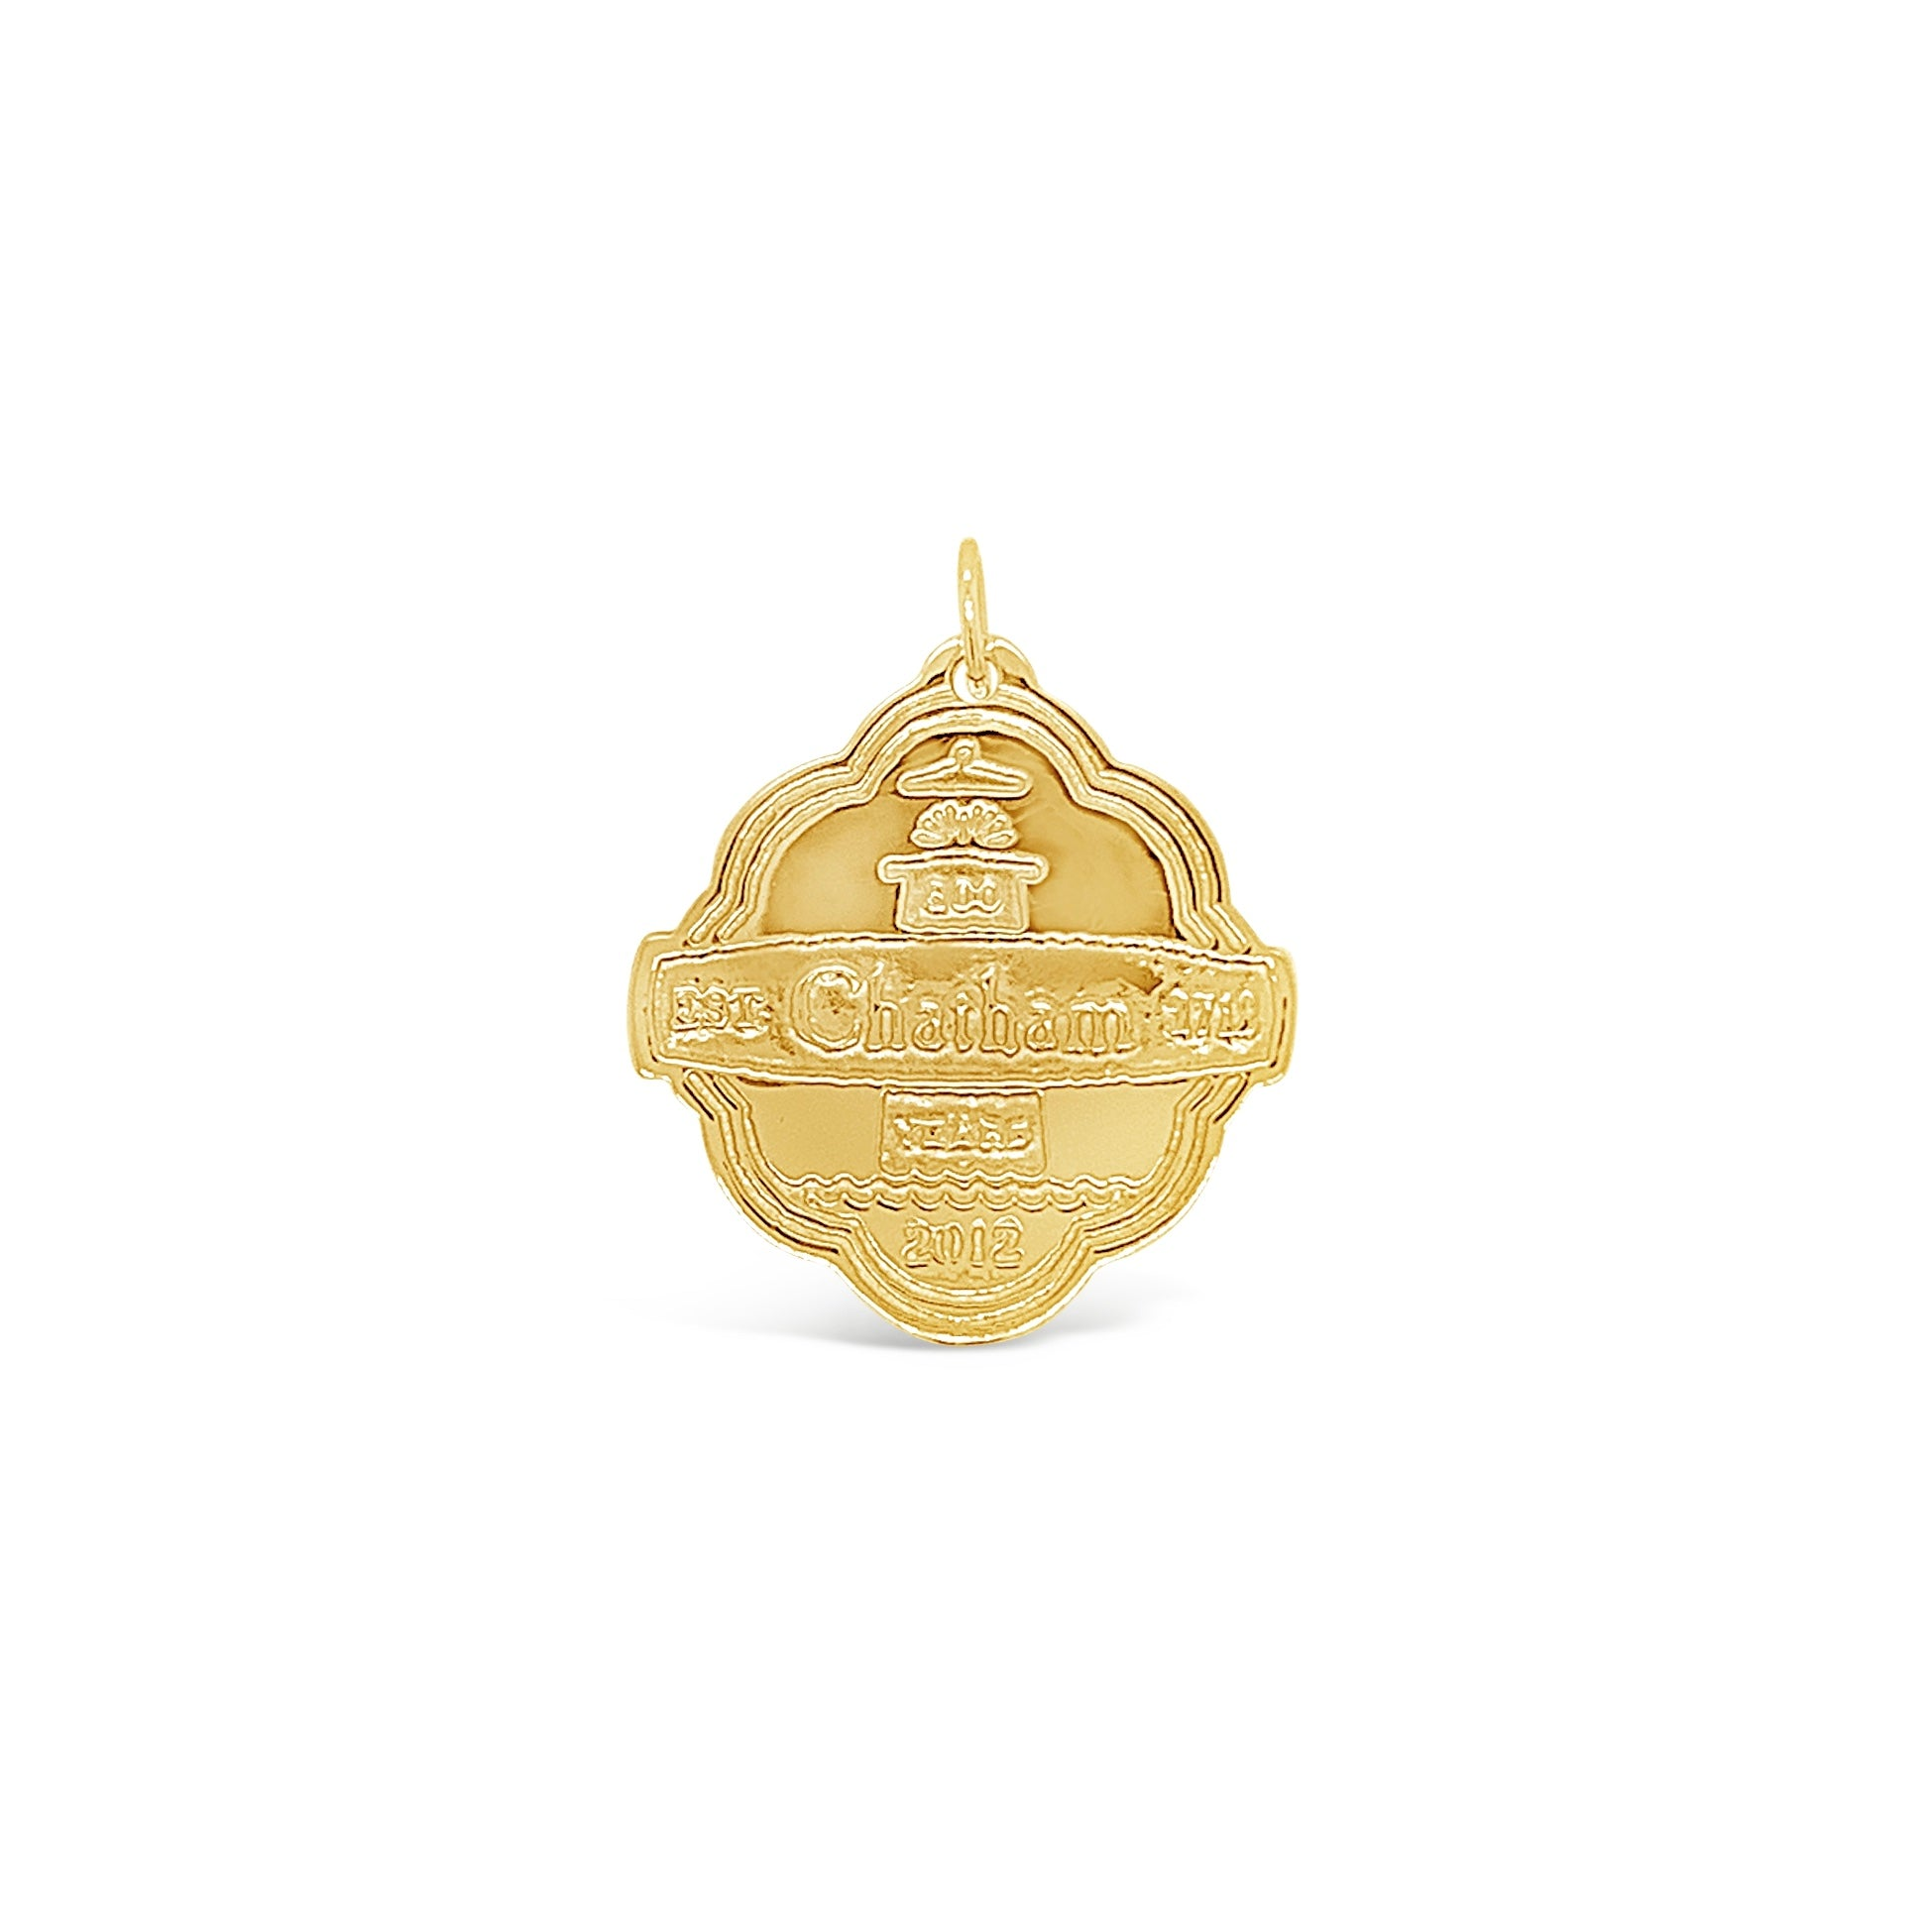 Chatham 300th Anniversary Pendant